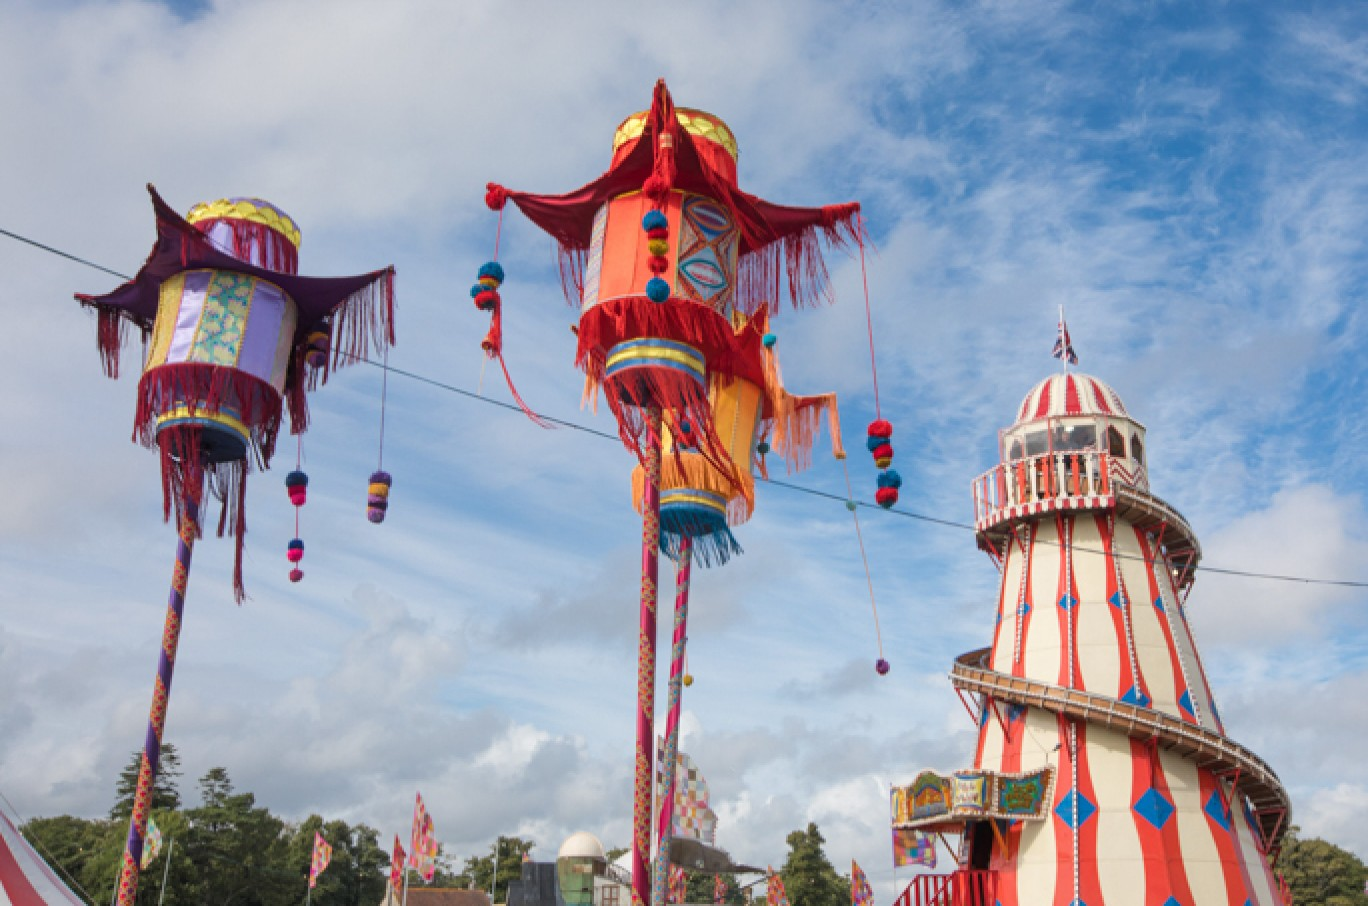 6_110-camp-bestival-2017-kids-area-vf-vic_69461501585082